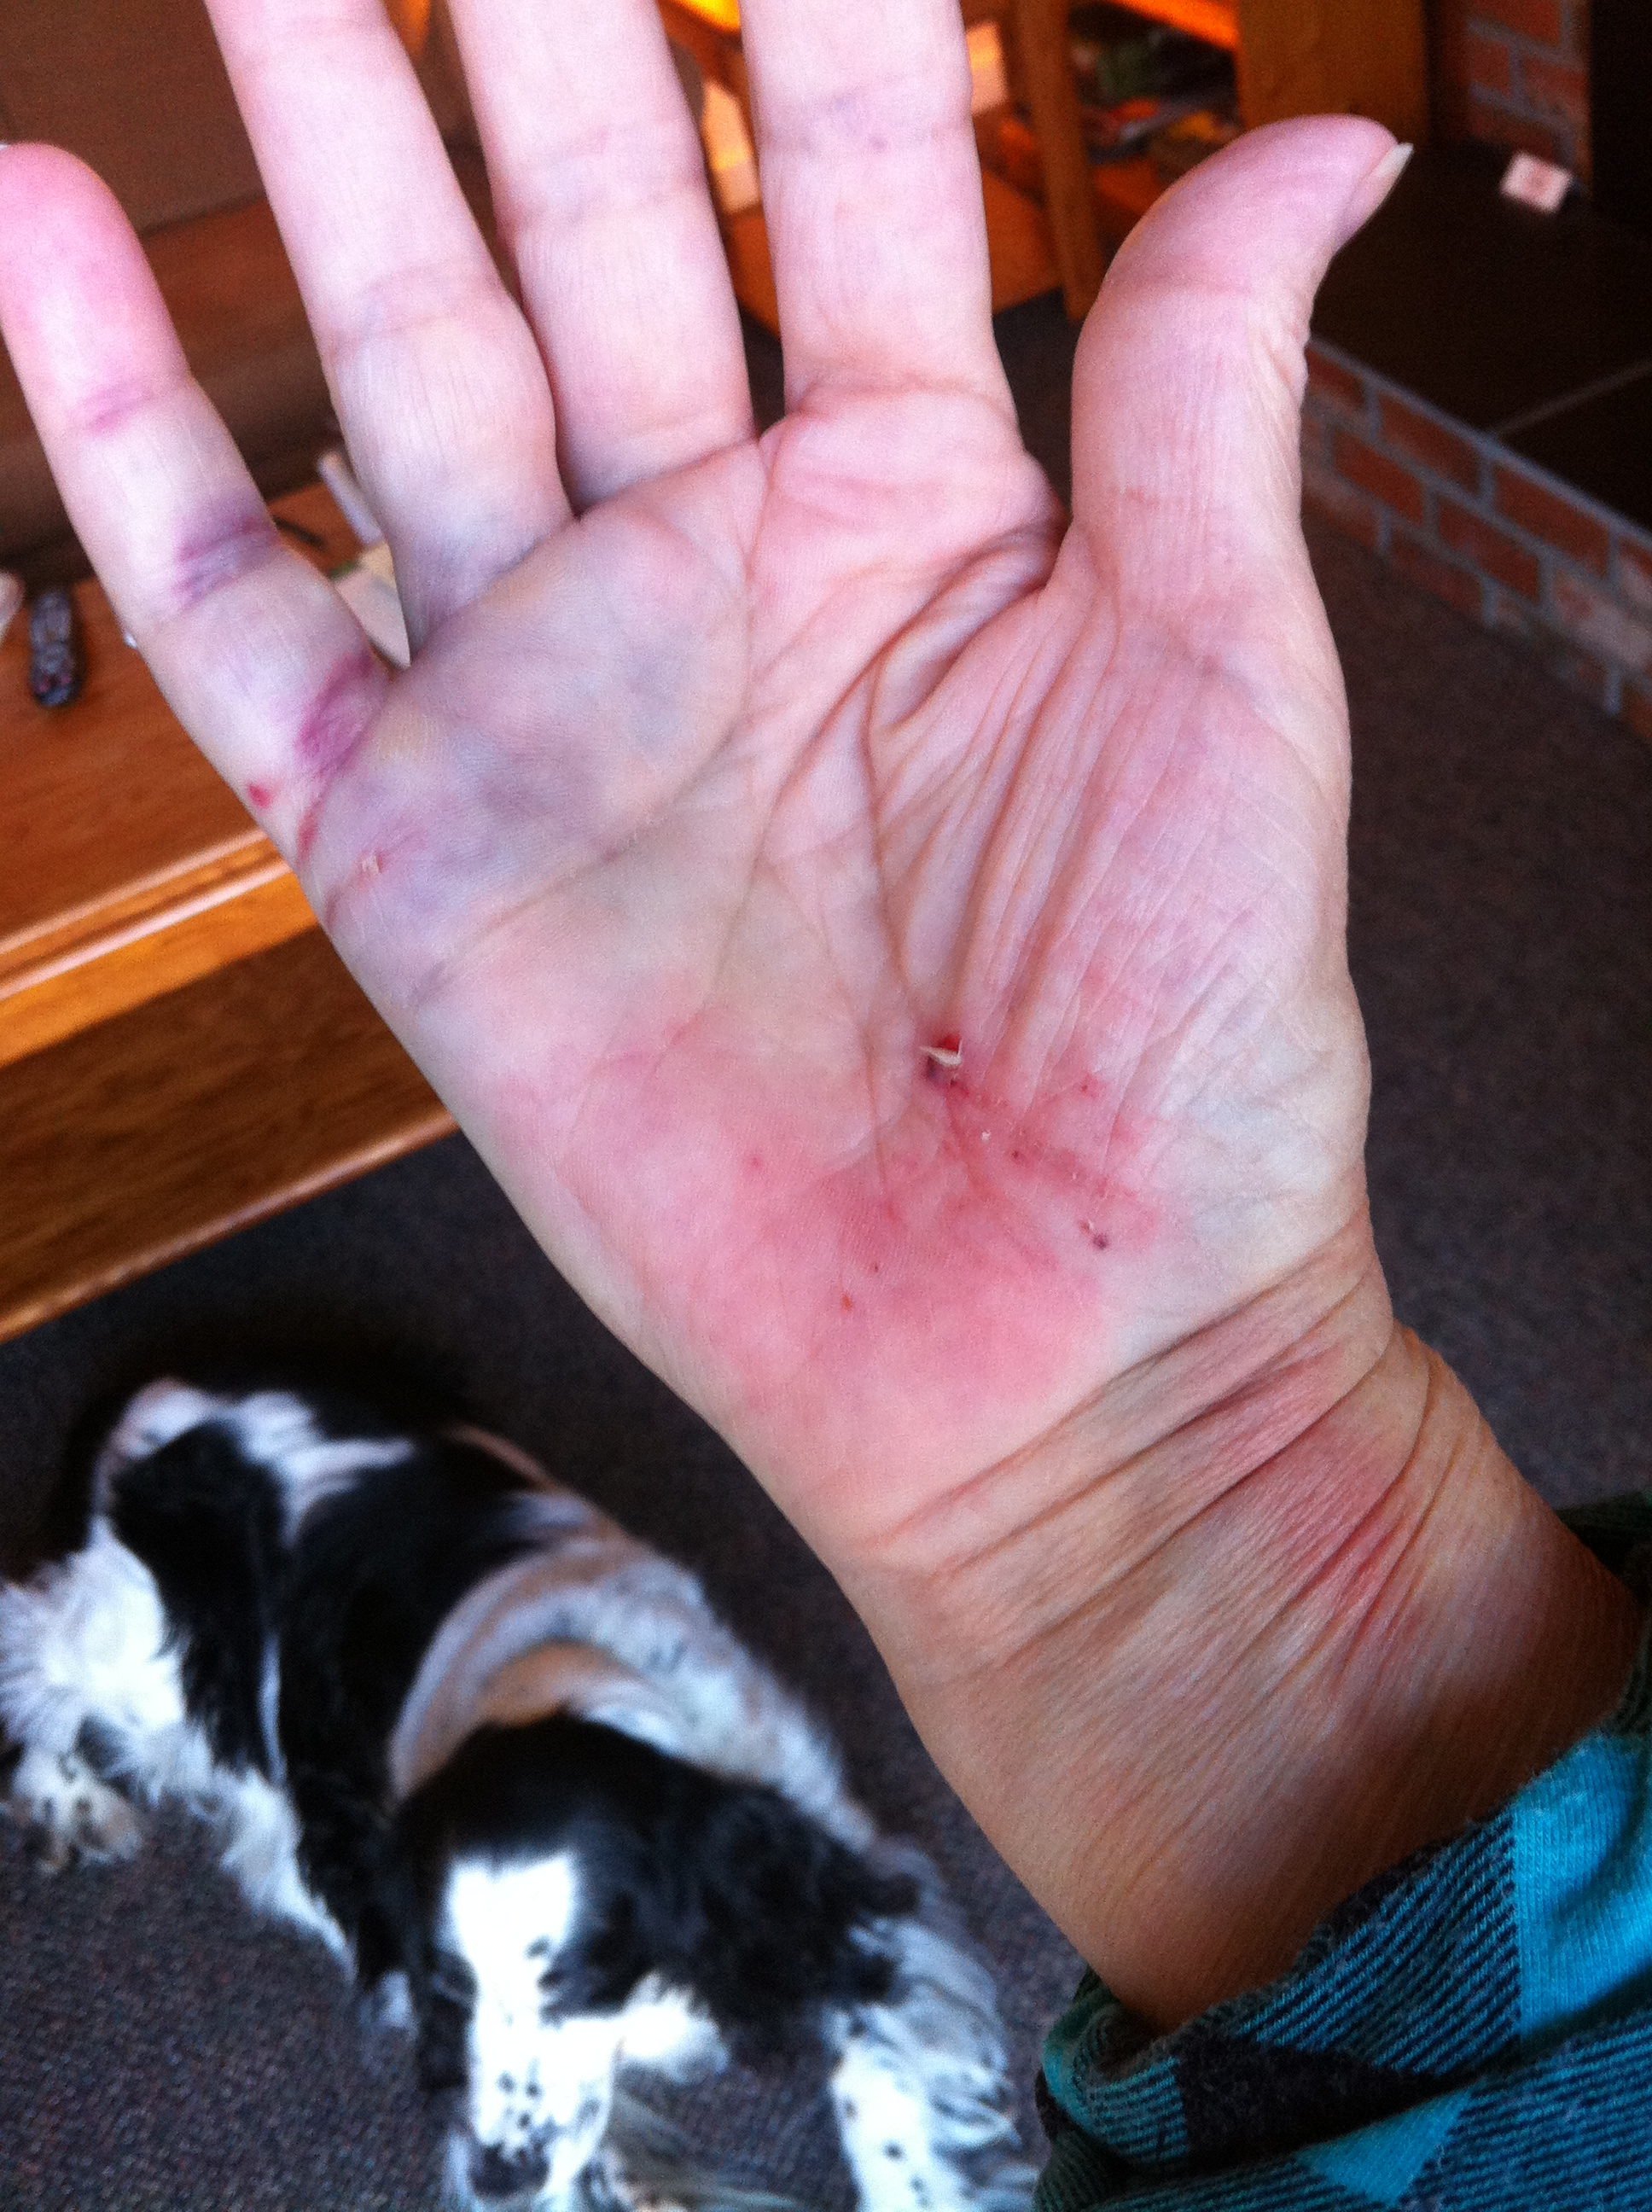 My hand shortly after the fall. It doesn't look too bad.